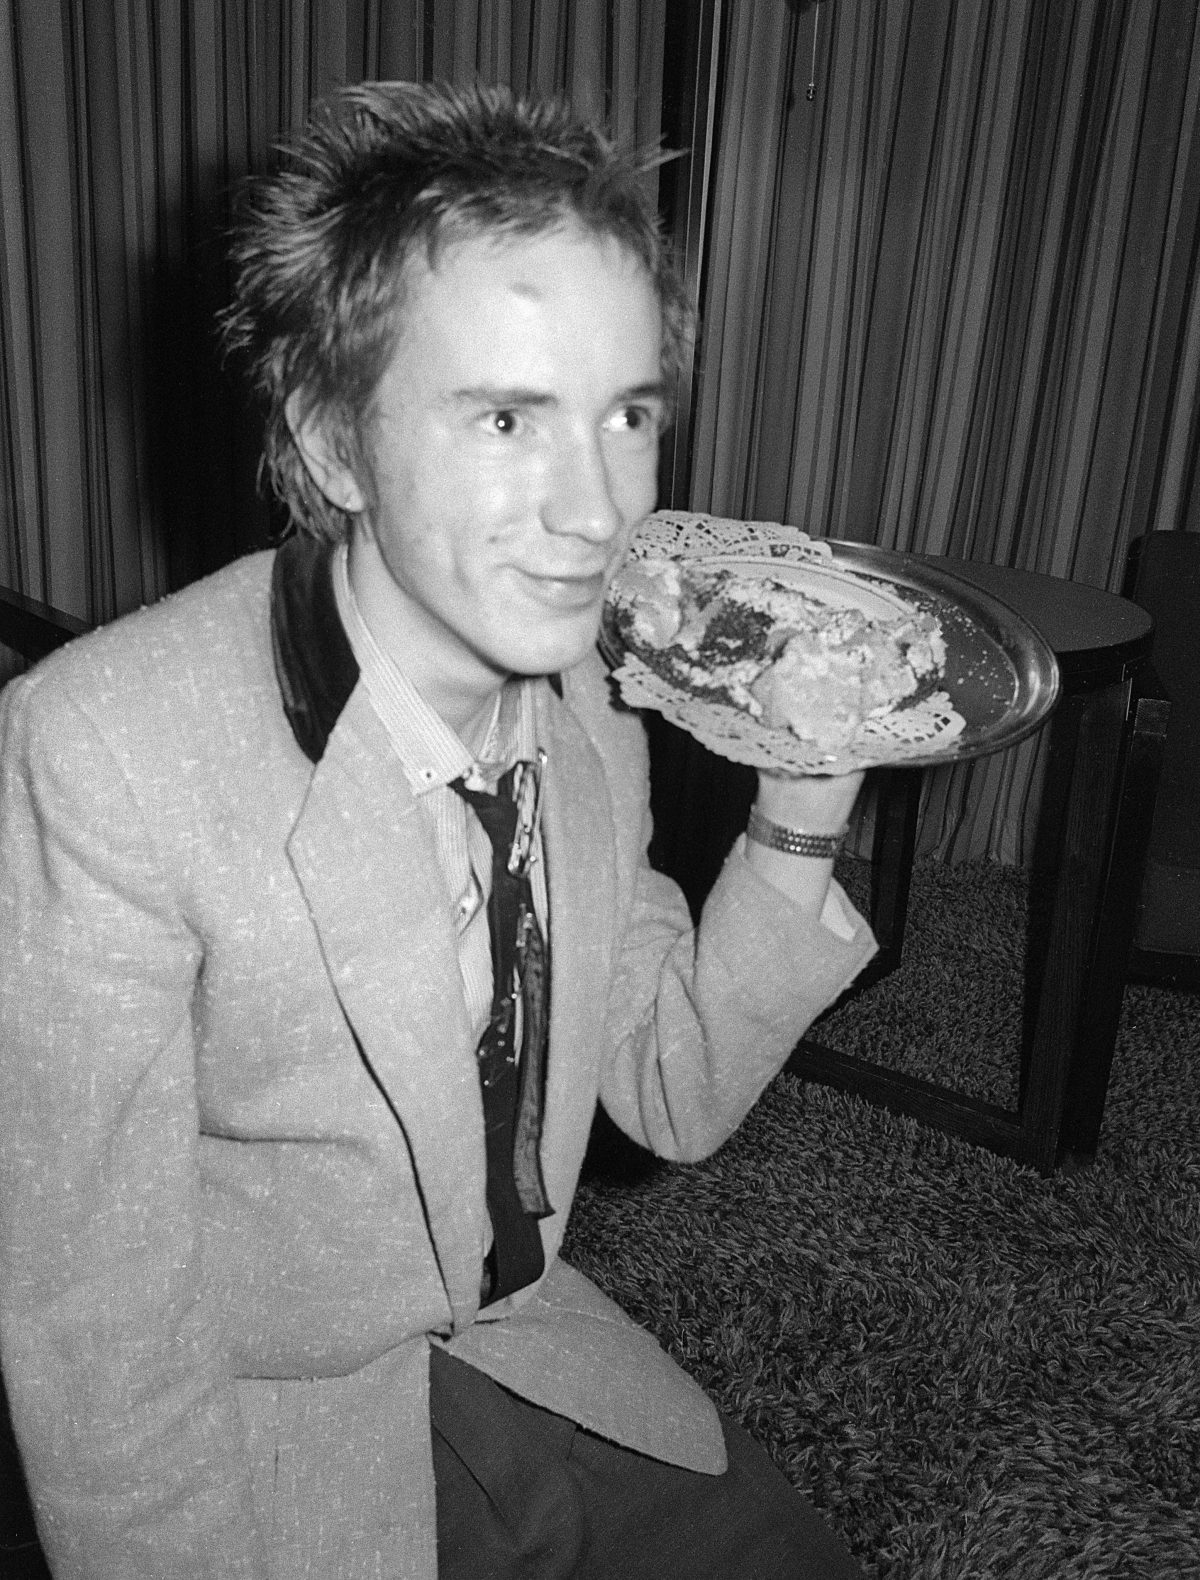 Johnny Rotten. Anarchy Tour. 1976